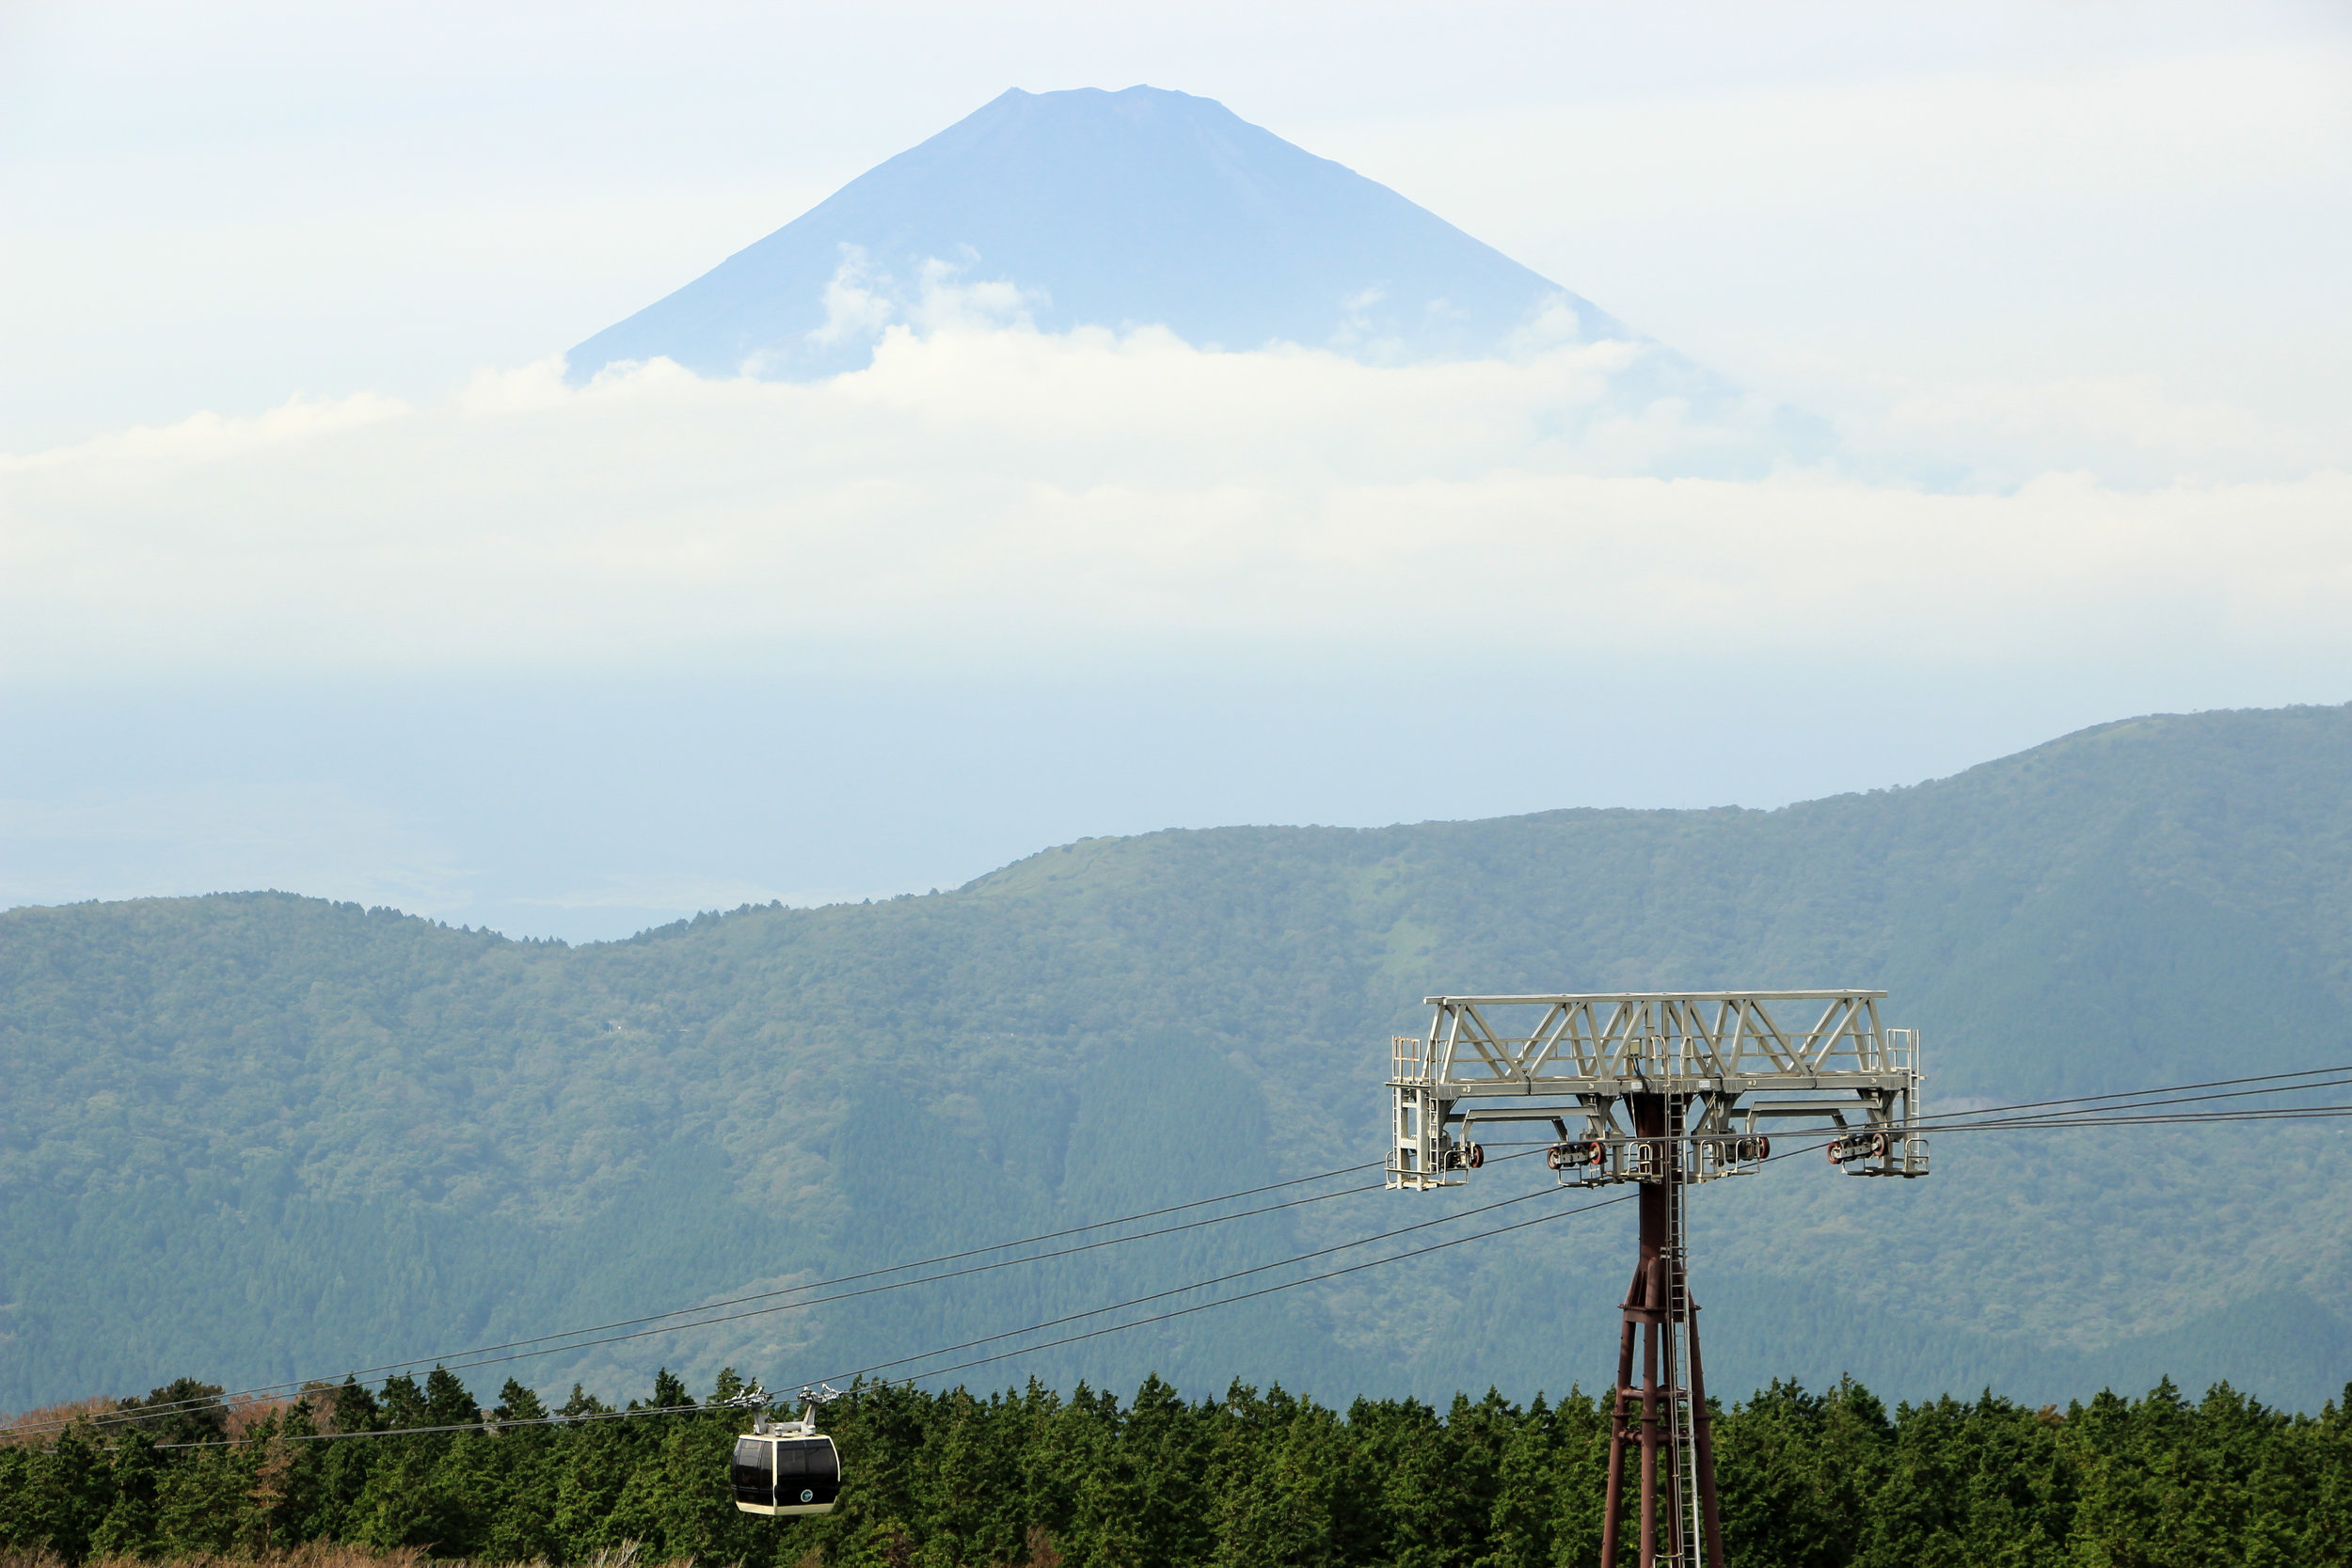 Hakone In A Simple Way Like That | Fuji, Owakudani, Hakone, Volcano, Ropeway | Fuji-Hakone-Izu National Park, Japan, Asia | DoLessGetMoreDone.com |